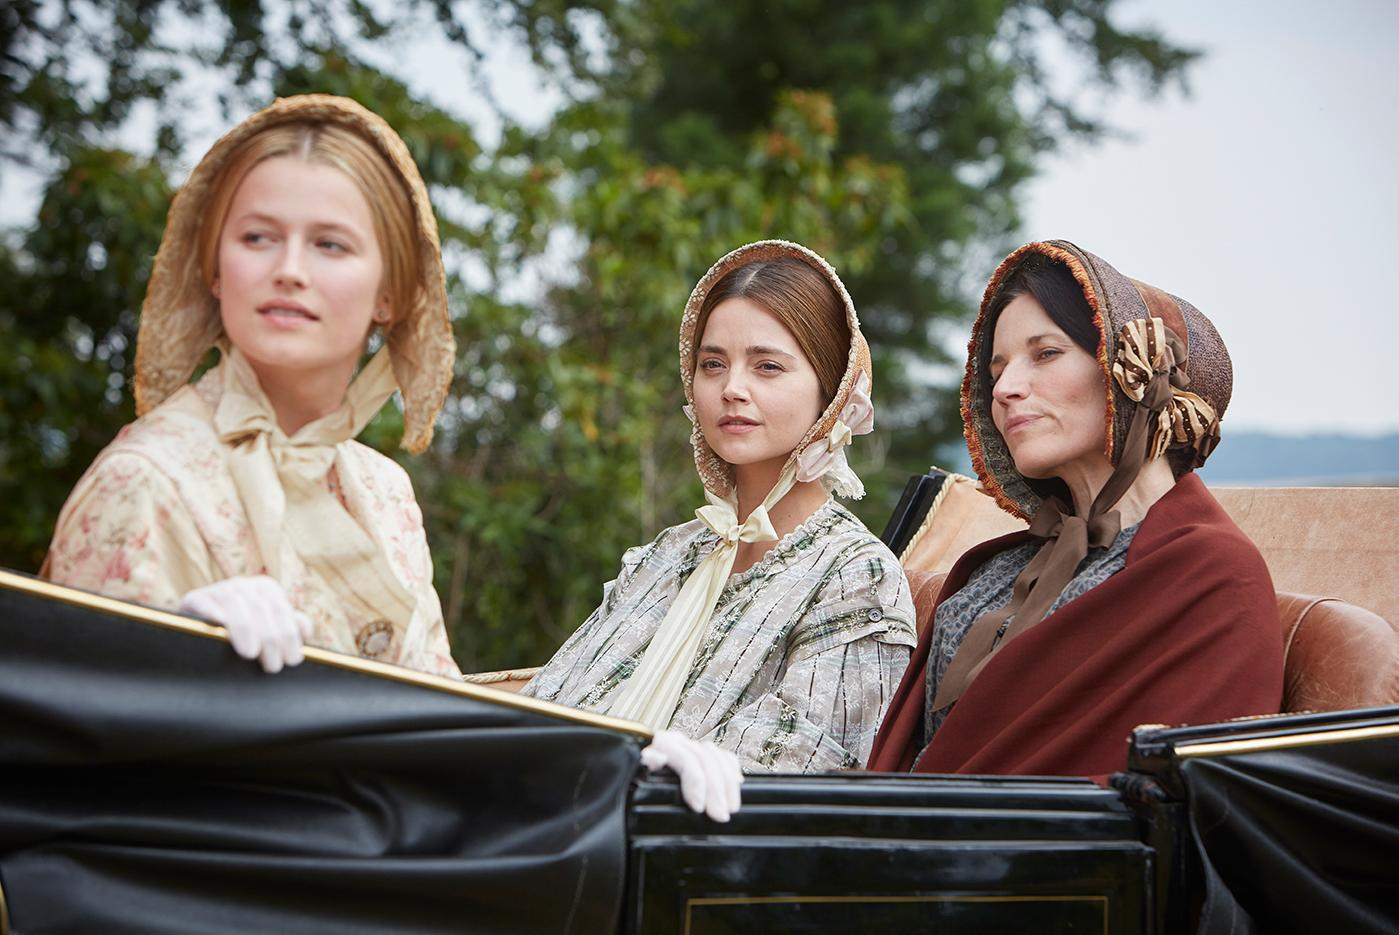 Sophie (Lilly Travers), Victoria (Jenna Coleman), and Feodora (Kate Fleetwood) in Victoria. Photo: Justin Slee/ITV Plc for MASTERPIECE